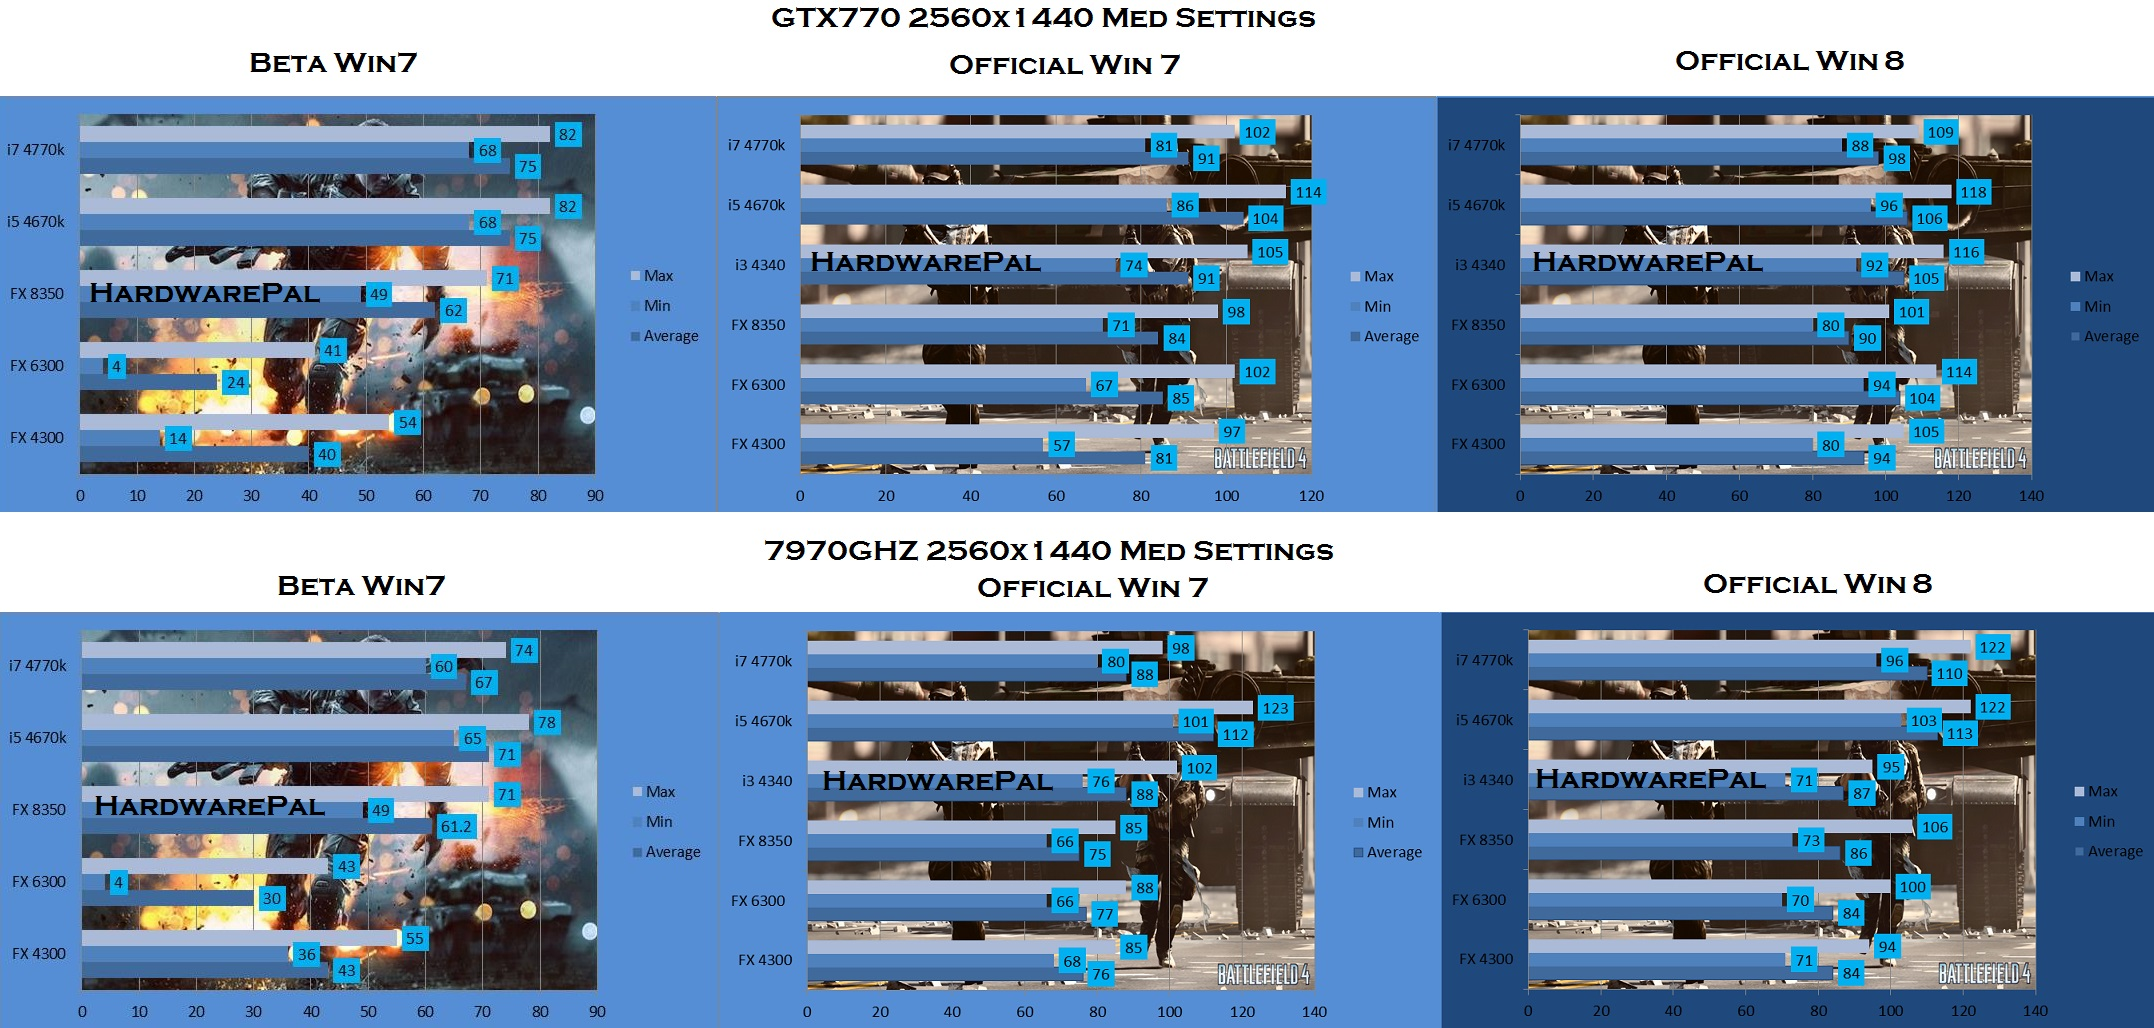 Battlefield 4 Benchmark, 2560 x 1440, Medium Settings, NVidia 770 GTX 4GB vs 7970Ghz